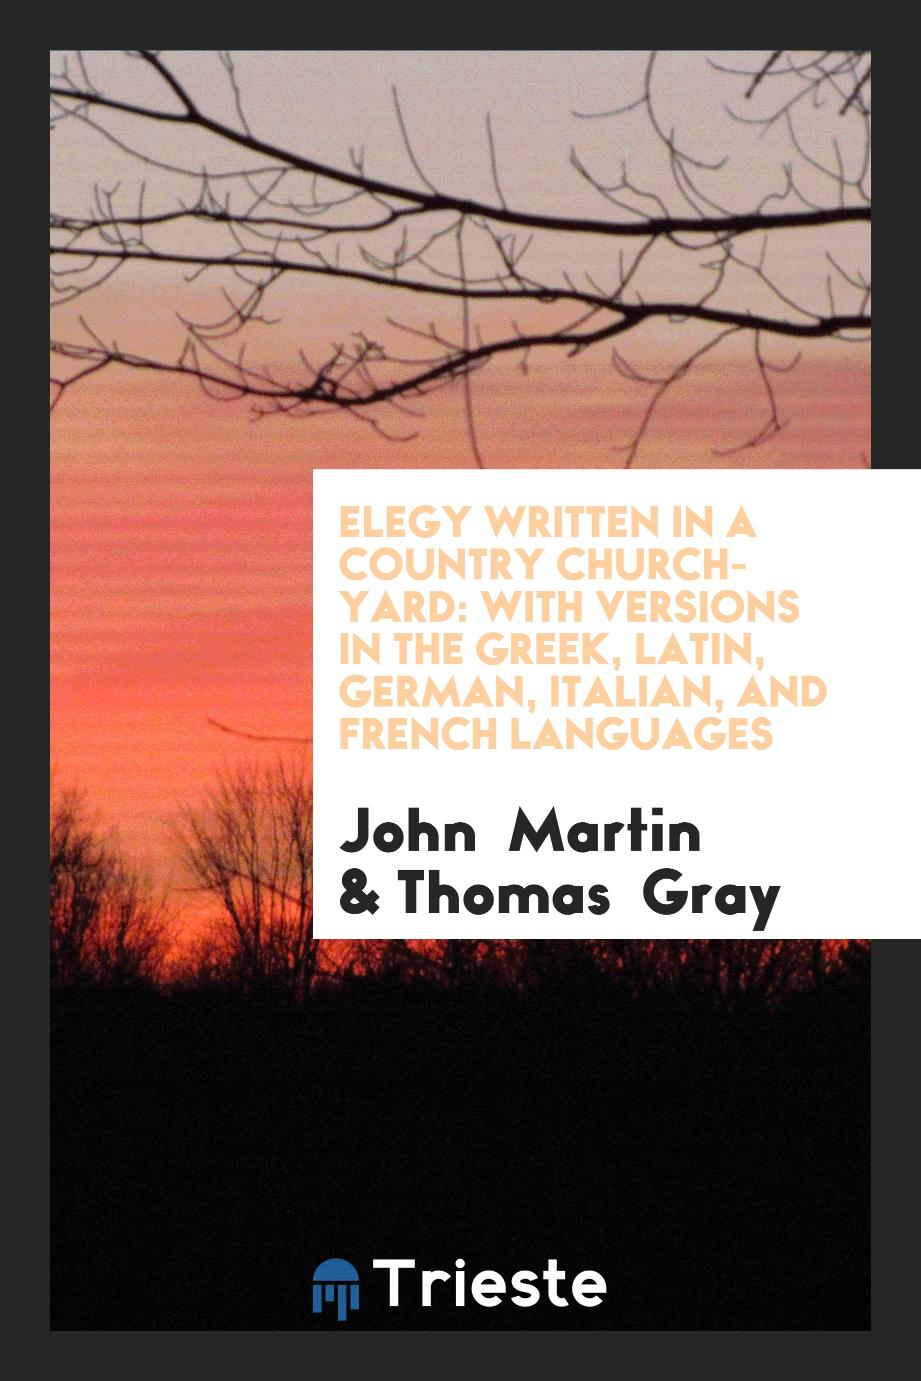 Elegy Written in a Country Church-Yard: With Versions in the Greek, Latin, German, Italian, and French Languages